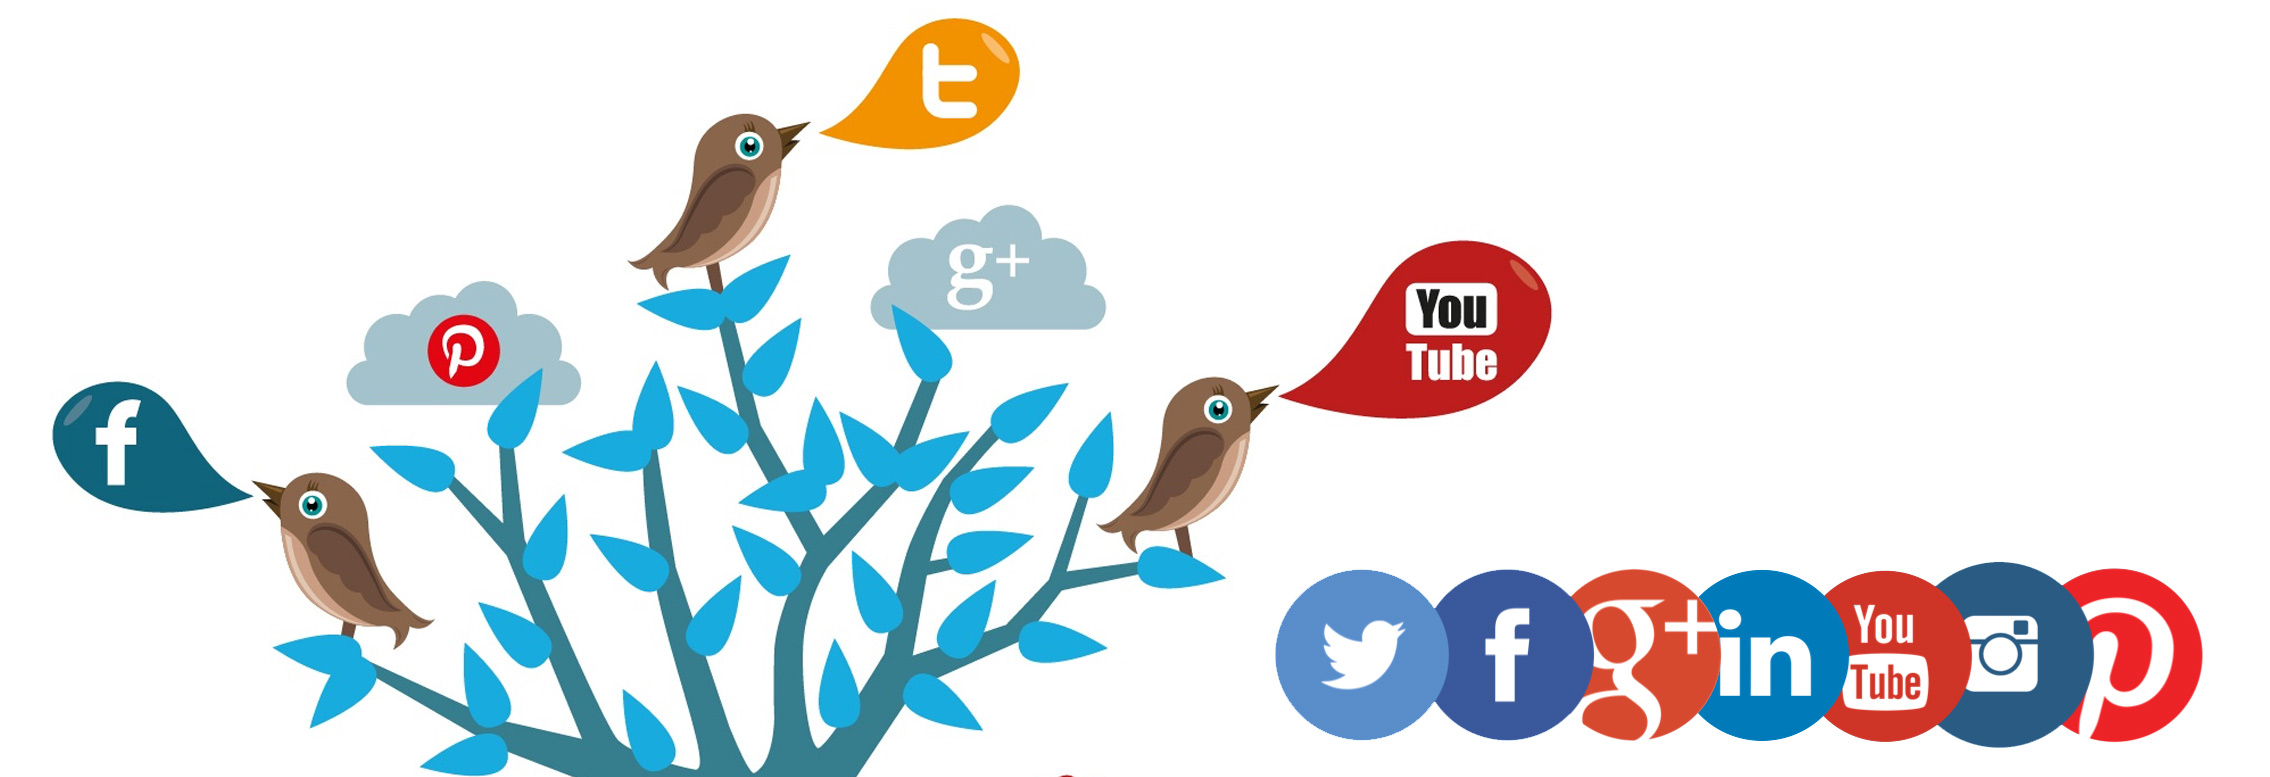 social networking strategy course barcelona microgesti oacute  social networking strategy course